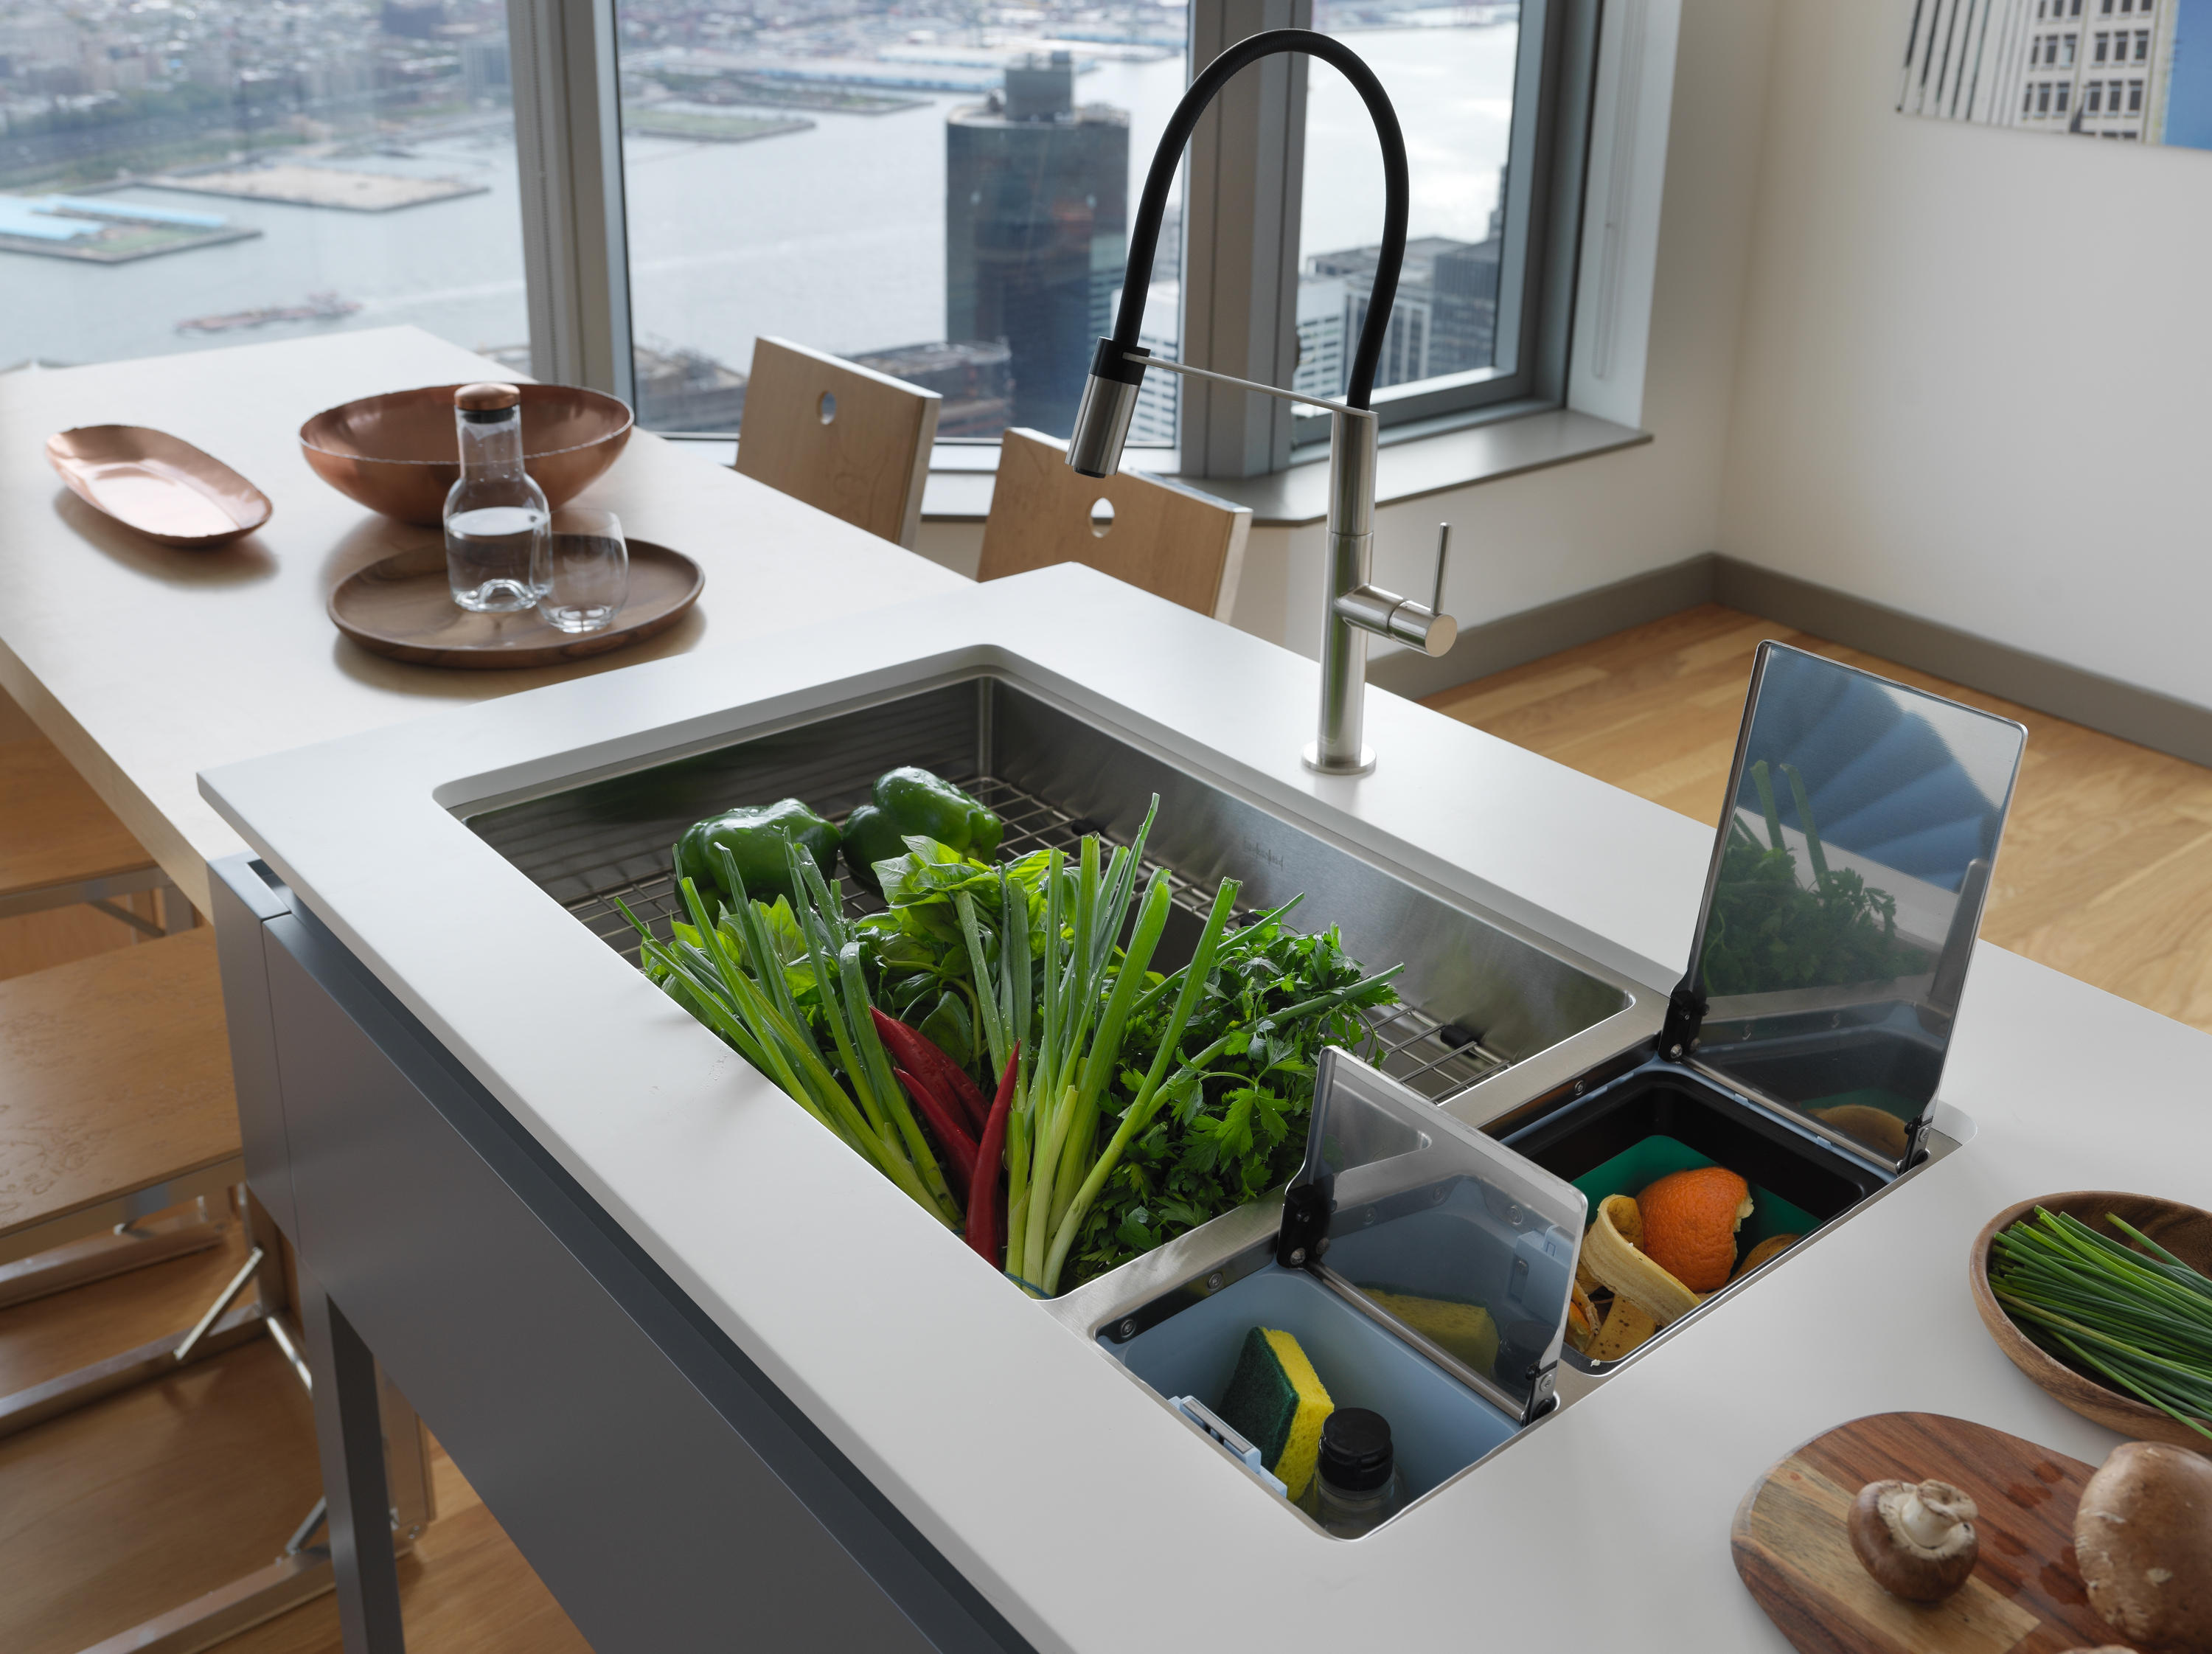 franco kitchen sinks glass tile countertop chef center stainless steel from